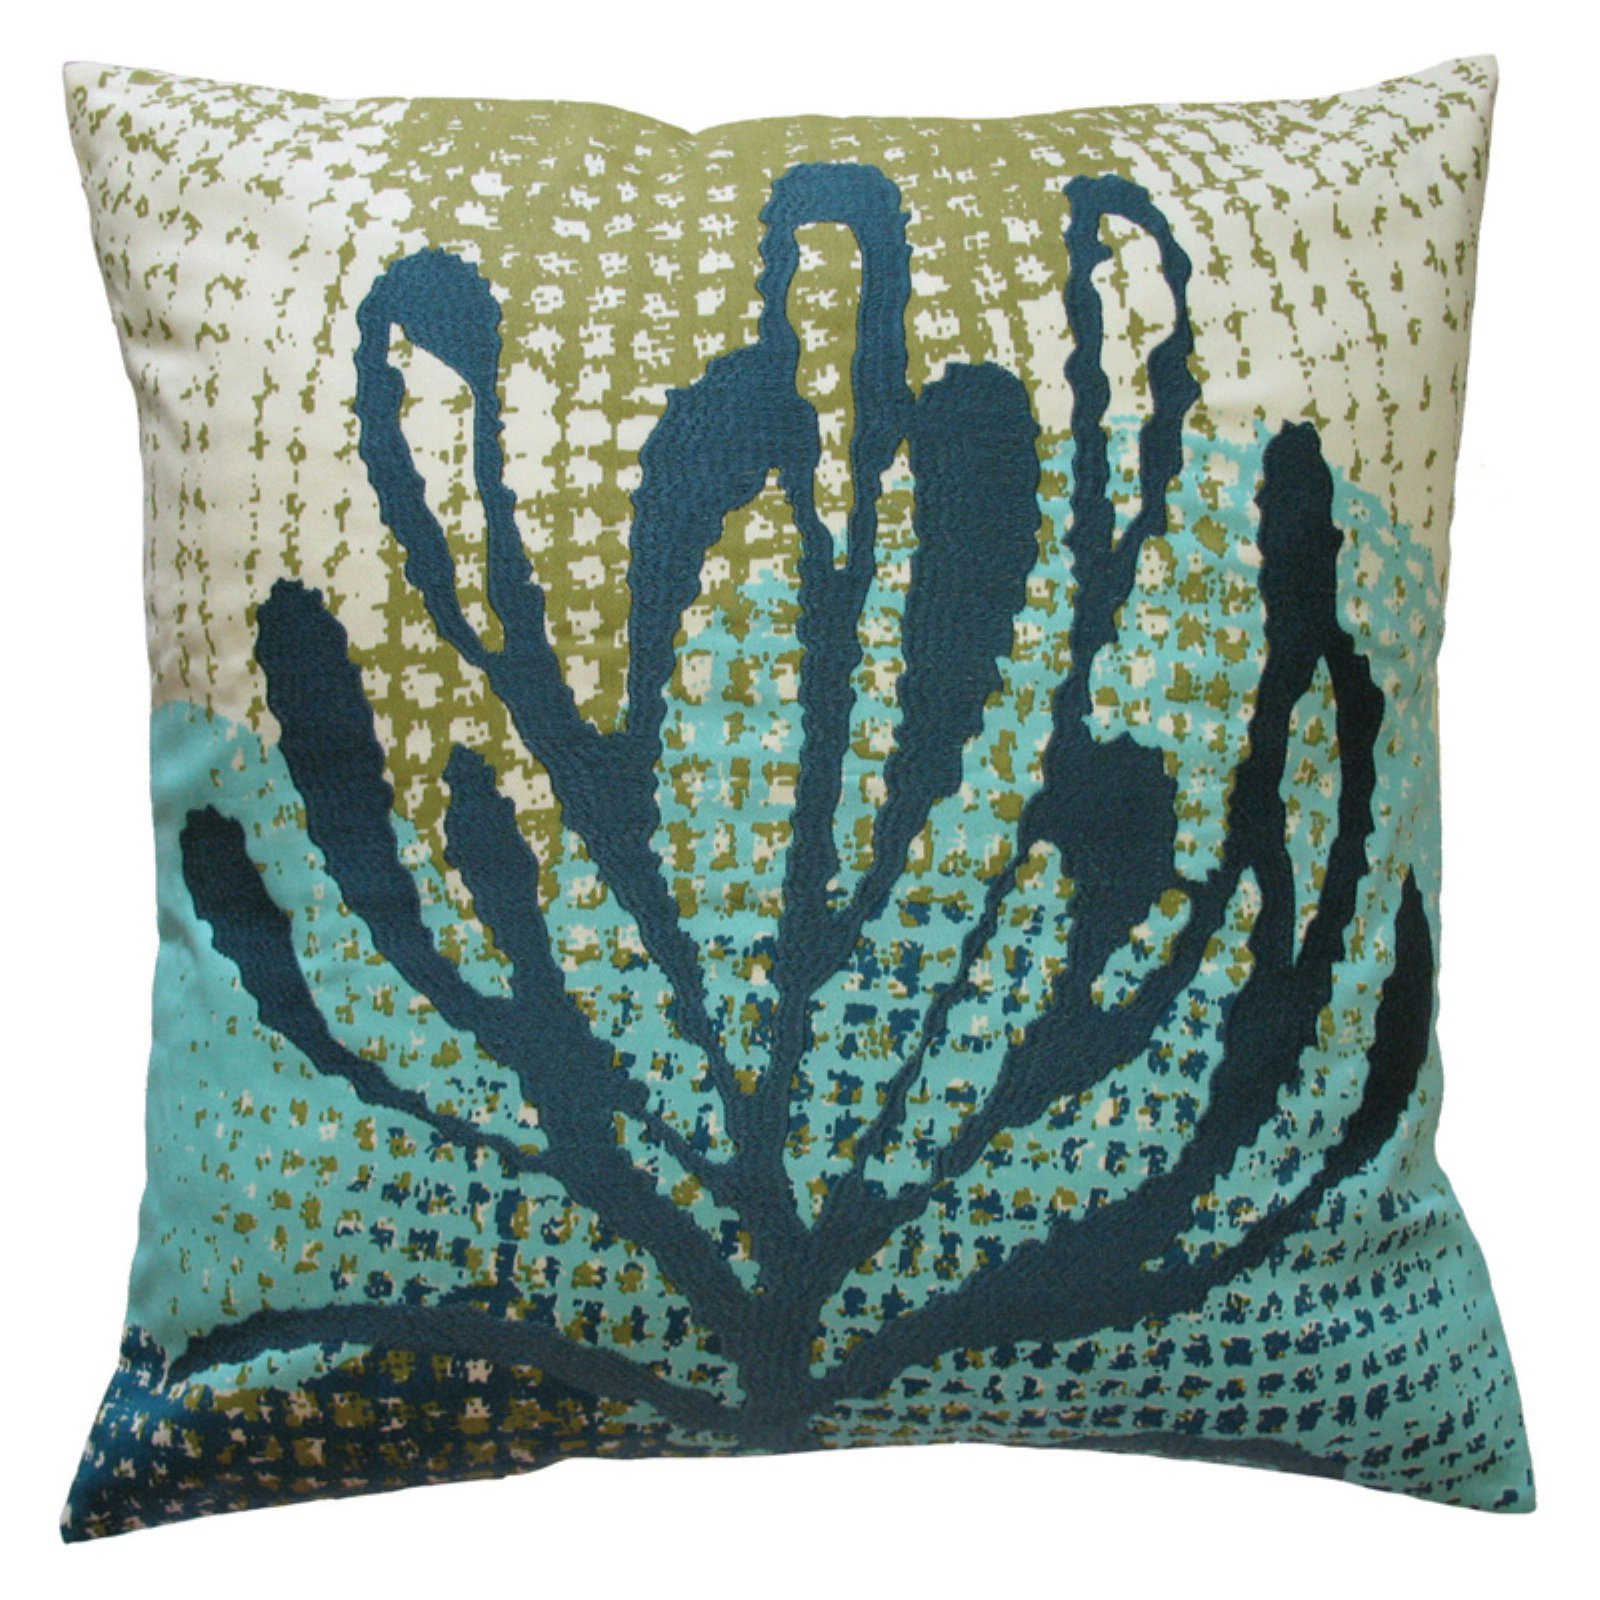 Koko Company Ecco Blue Leaf Decorative Pillow